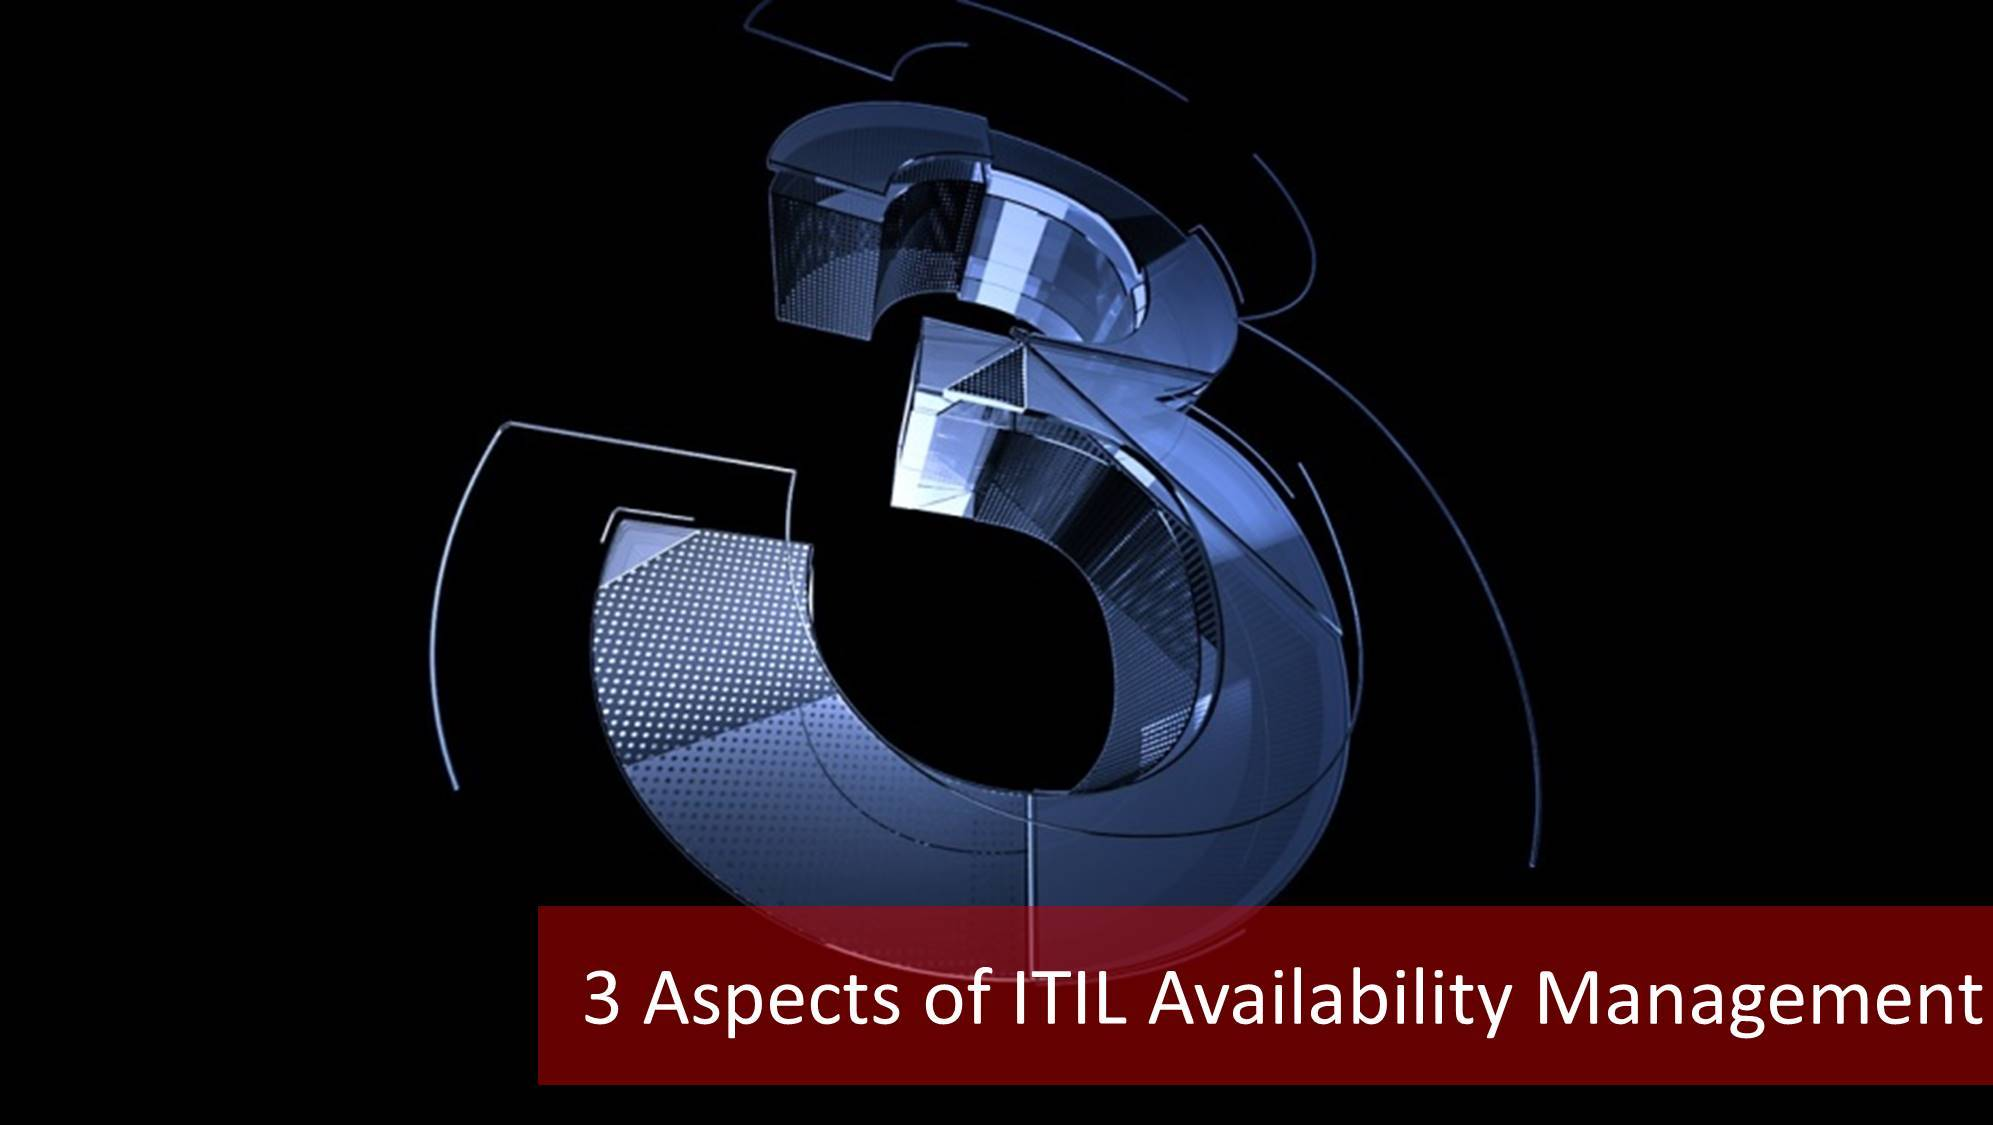 ITIL availability management